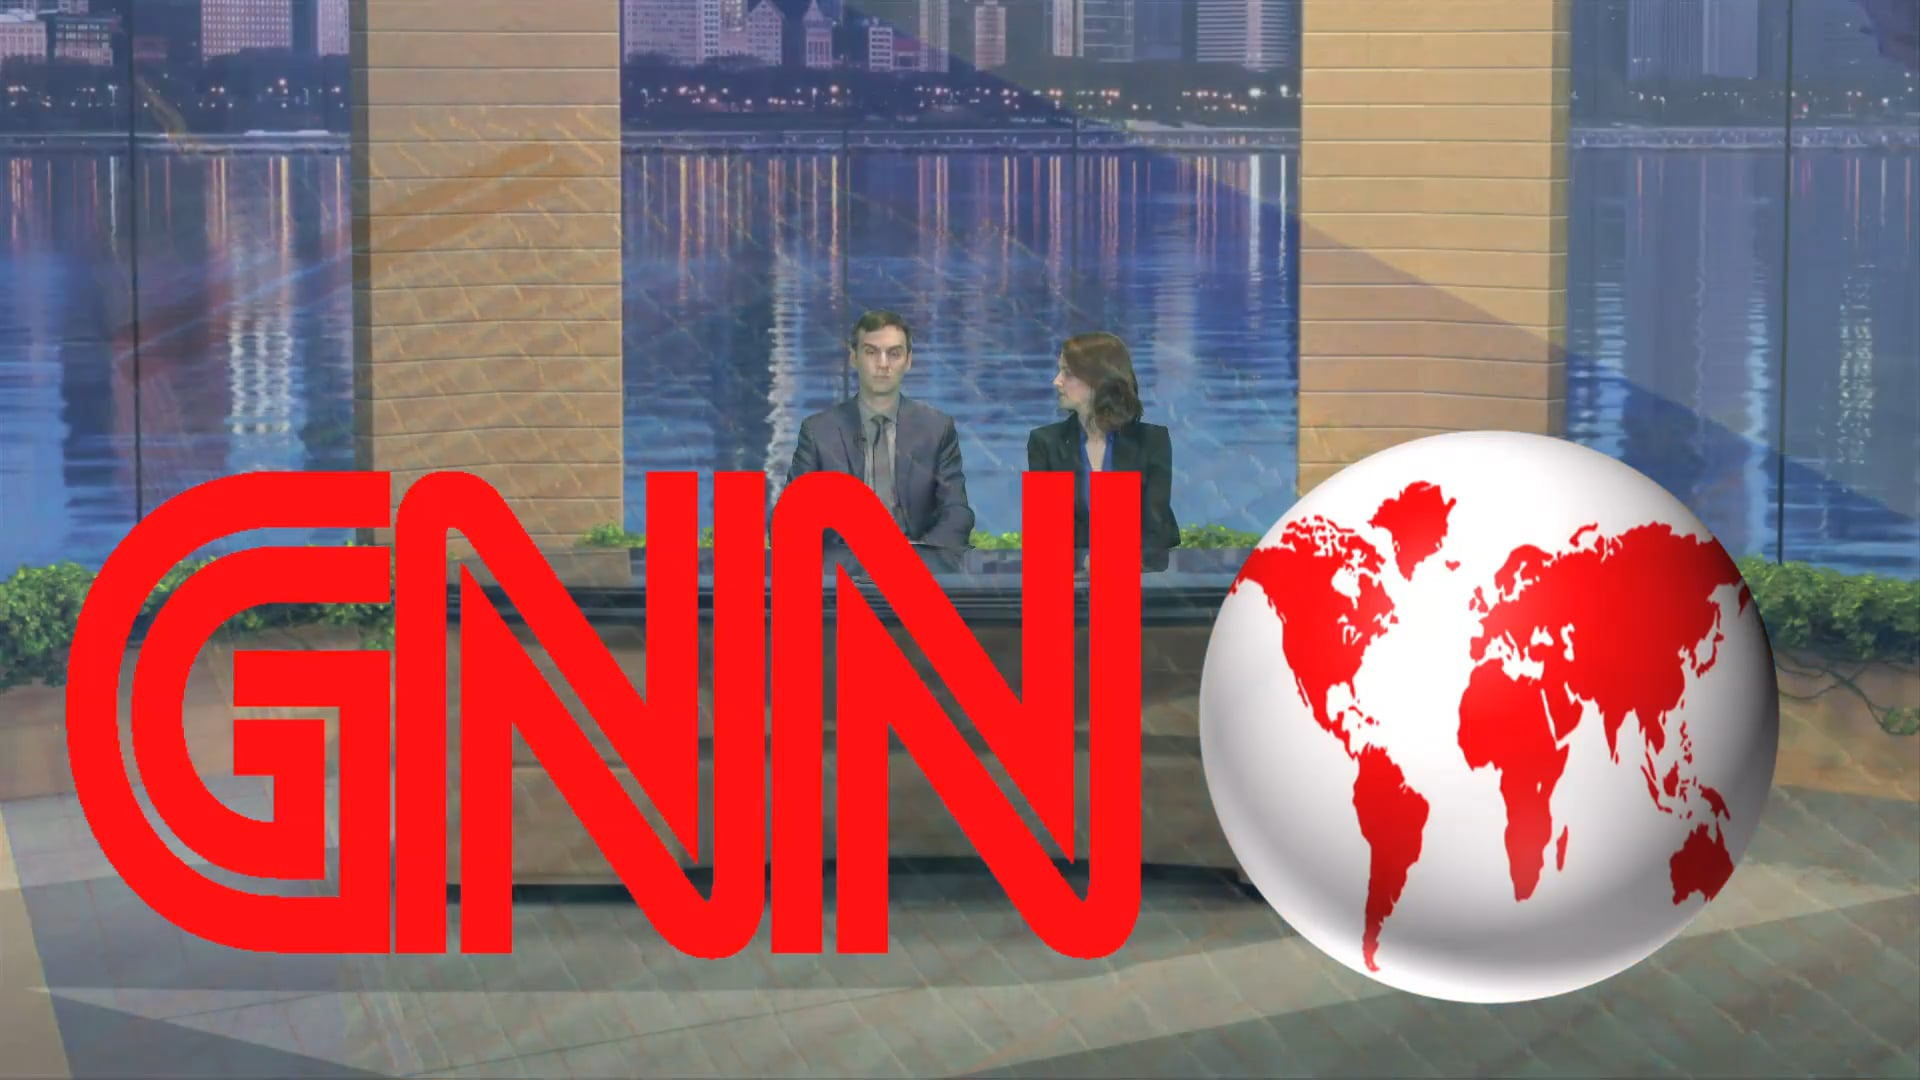 GREAT NEWS NETWORK